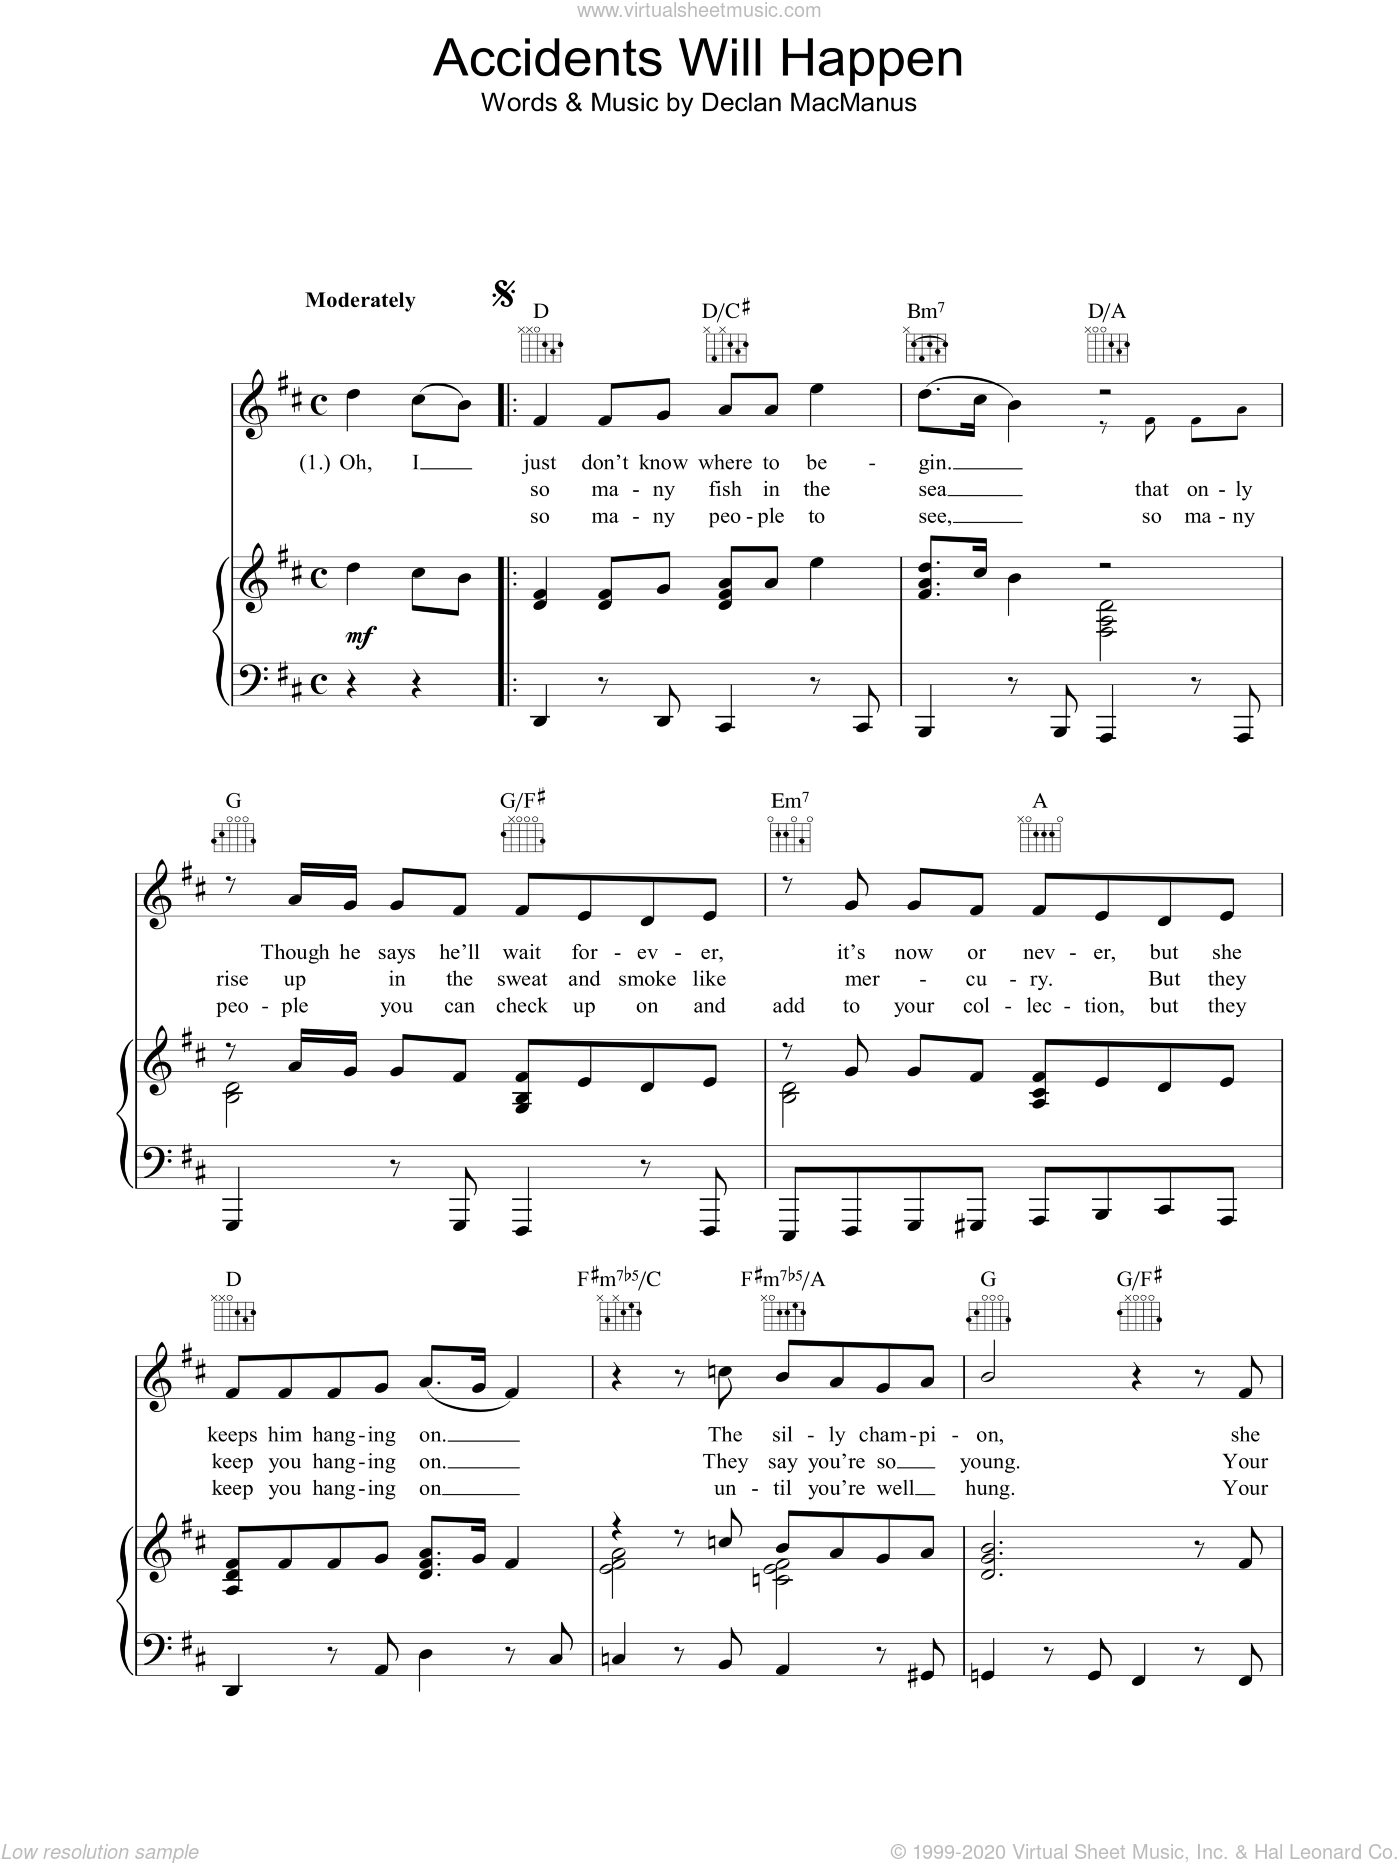 Accidents Will Happen sheet music for voice, piano or guitar by Declan Macmanus and Elvis Costello. Score Image Preview.